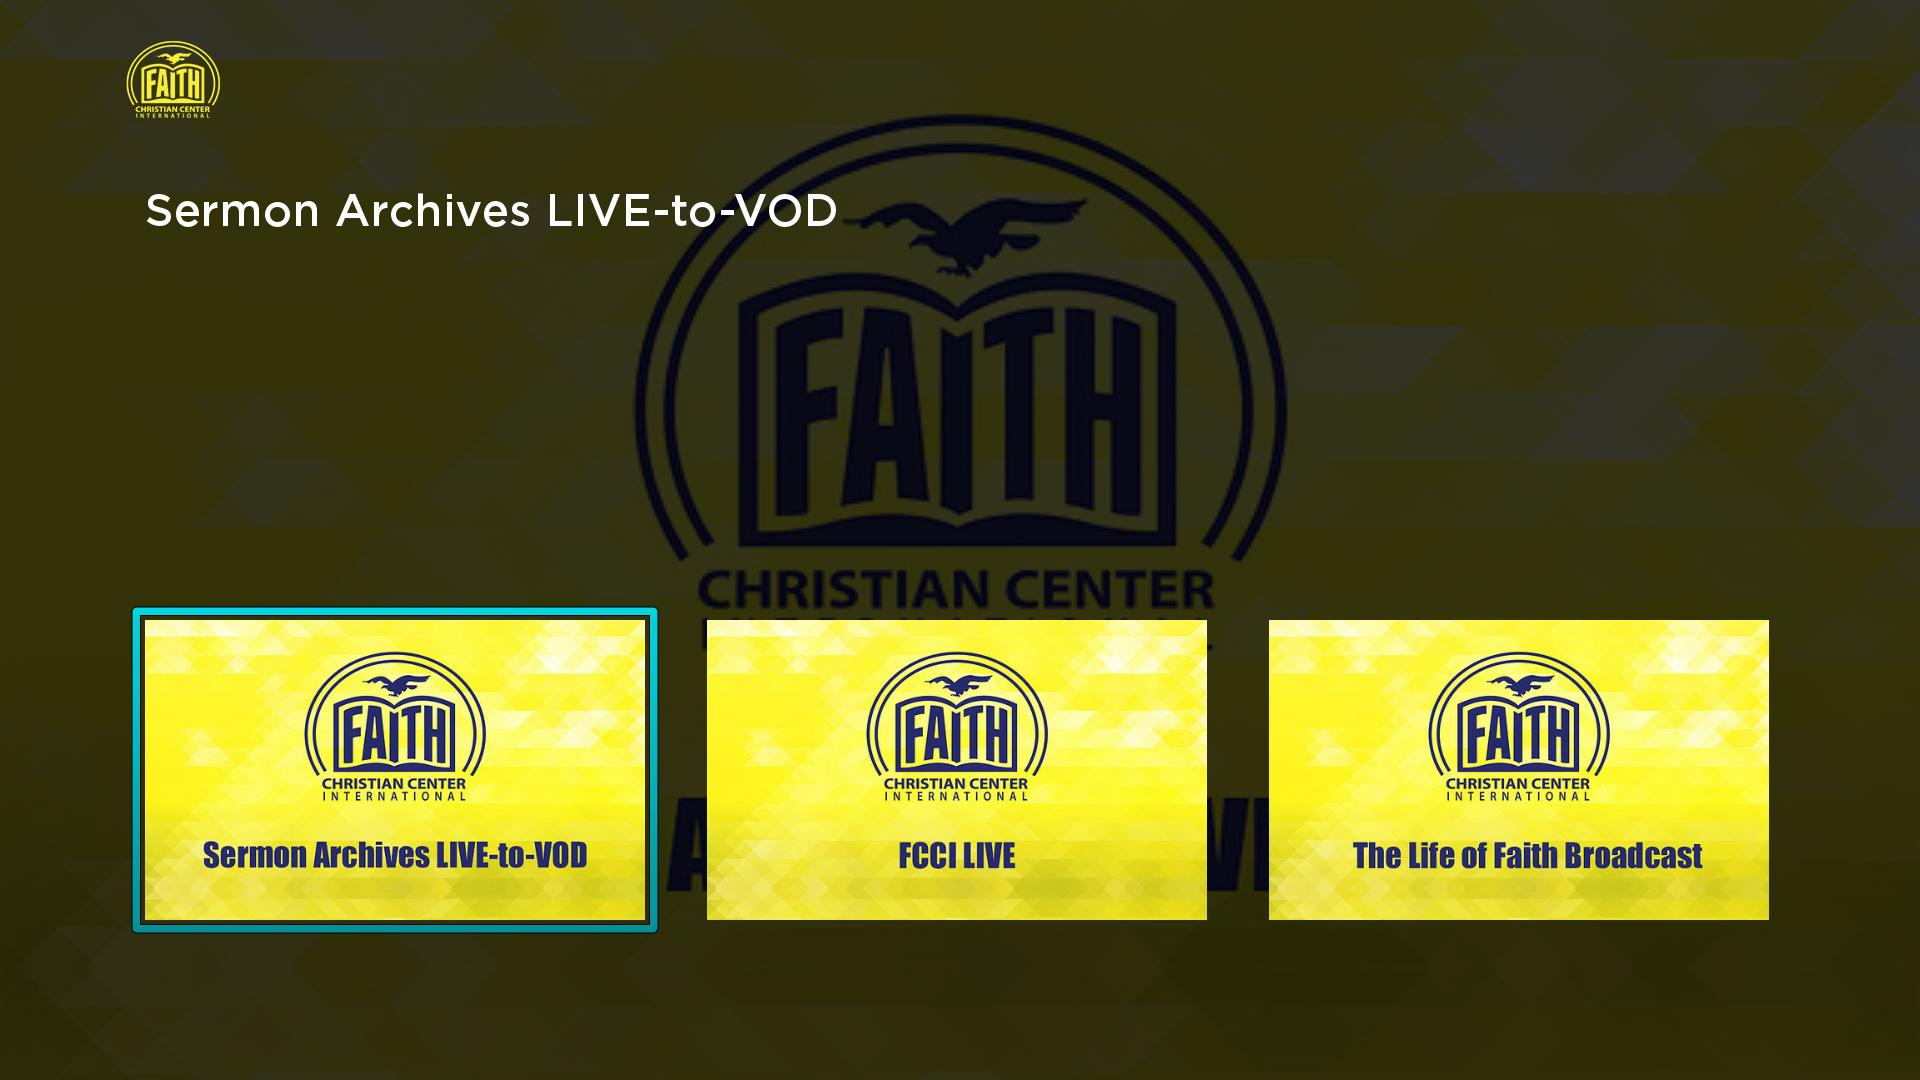 The Life of Faith Broadcast Screenshot 001